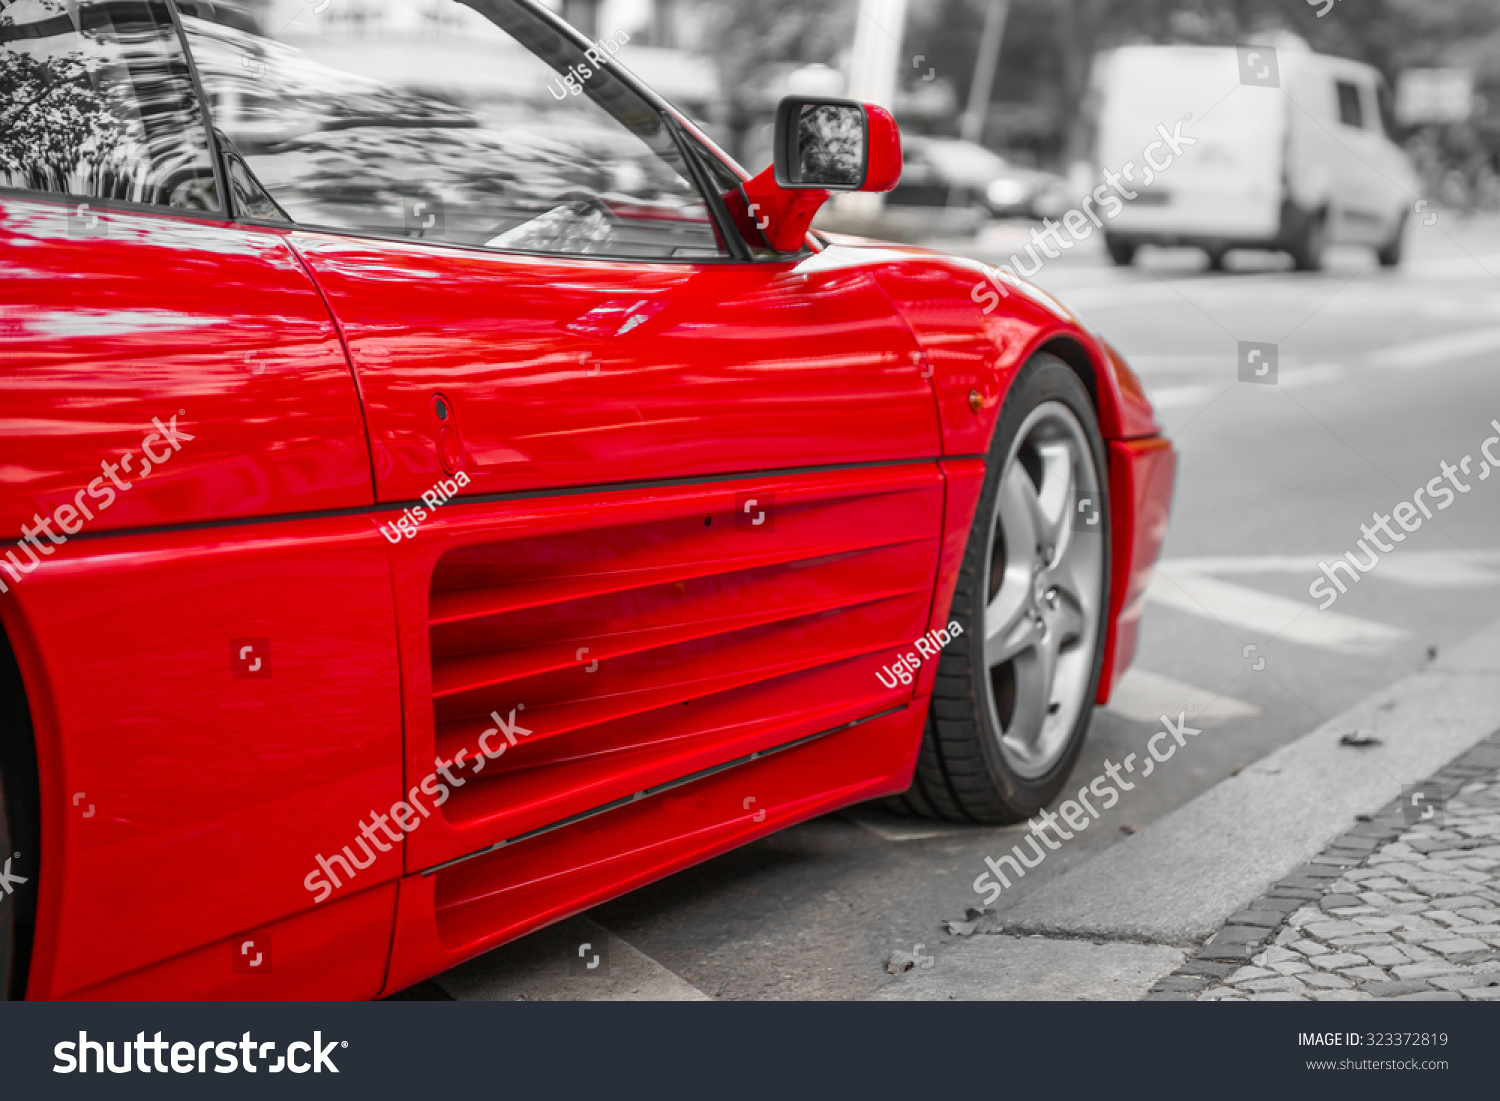 Red Sports Car On City Streets, Black And White Background ...